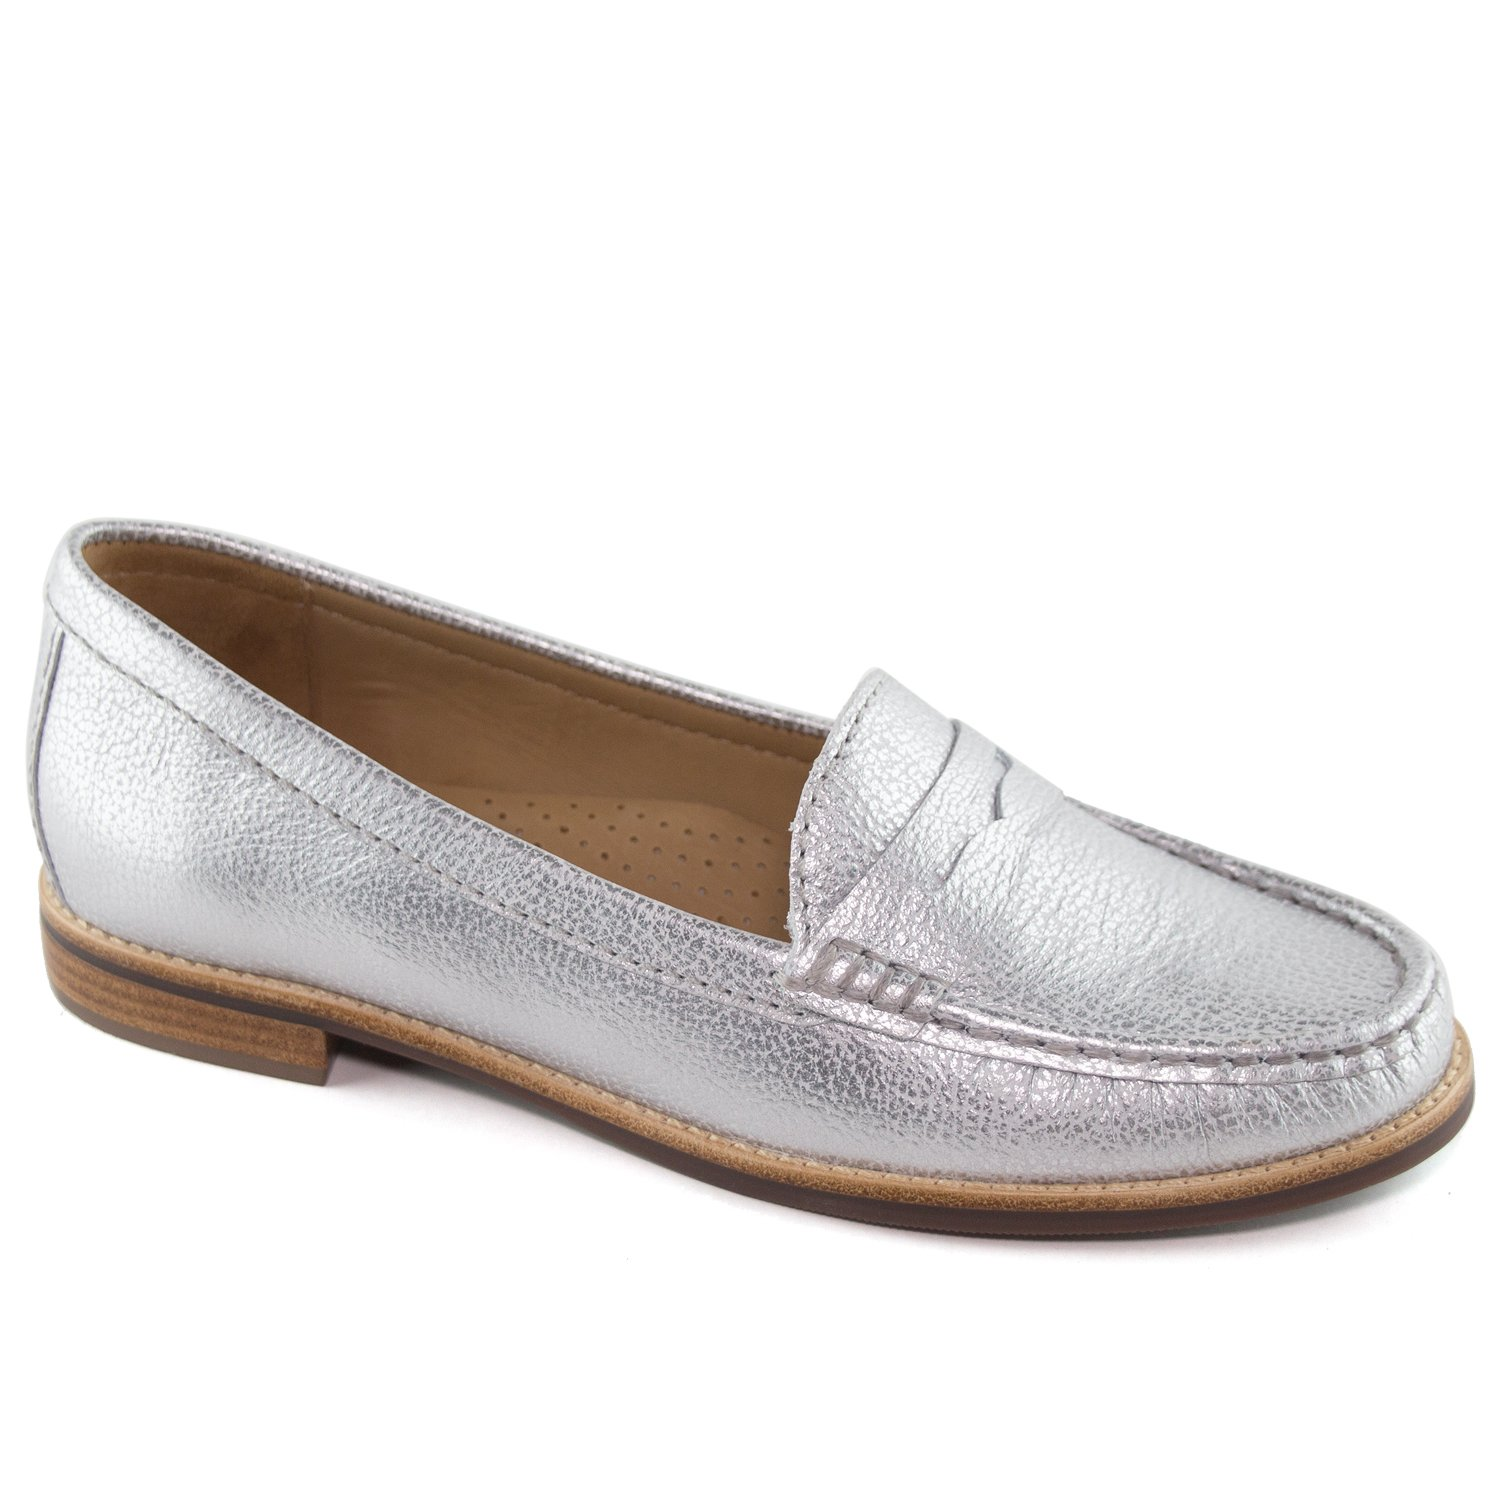 Driver Club USA Women's Genuine Leather Made in Brazil Greenwich Fashion Metallic Silver Penny Loafer 8.5